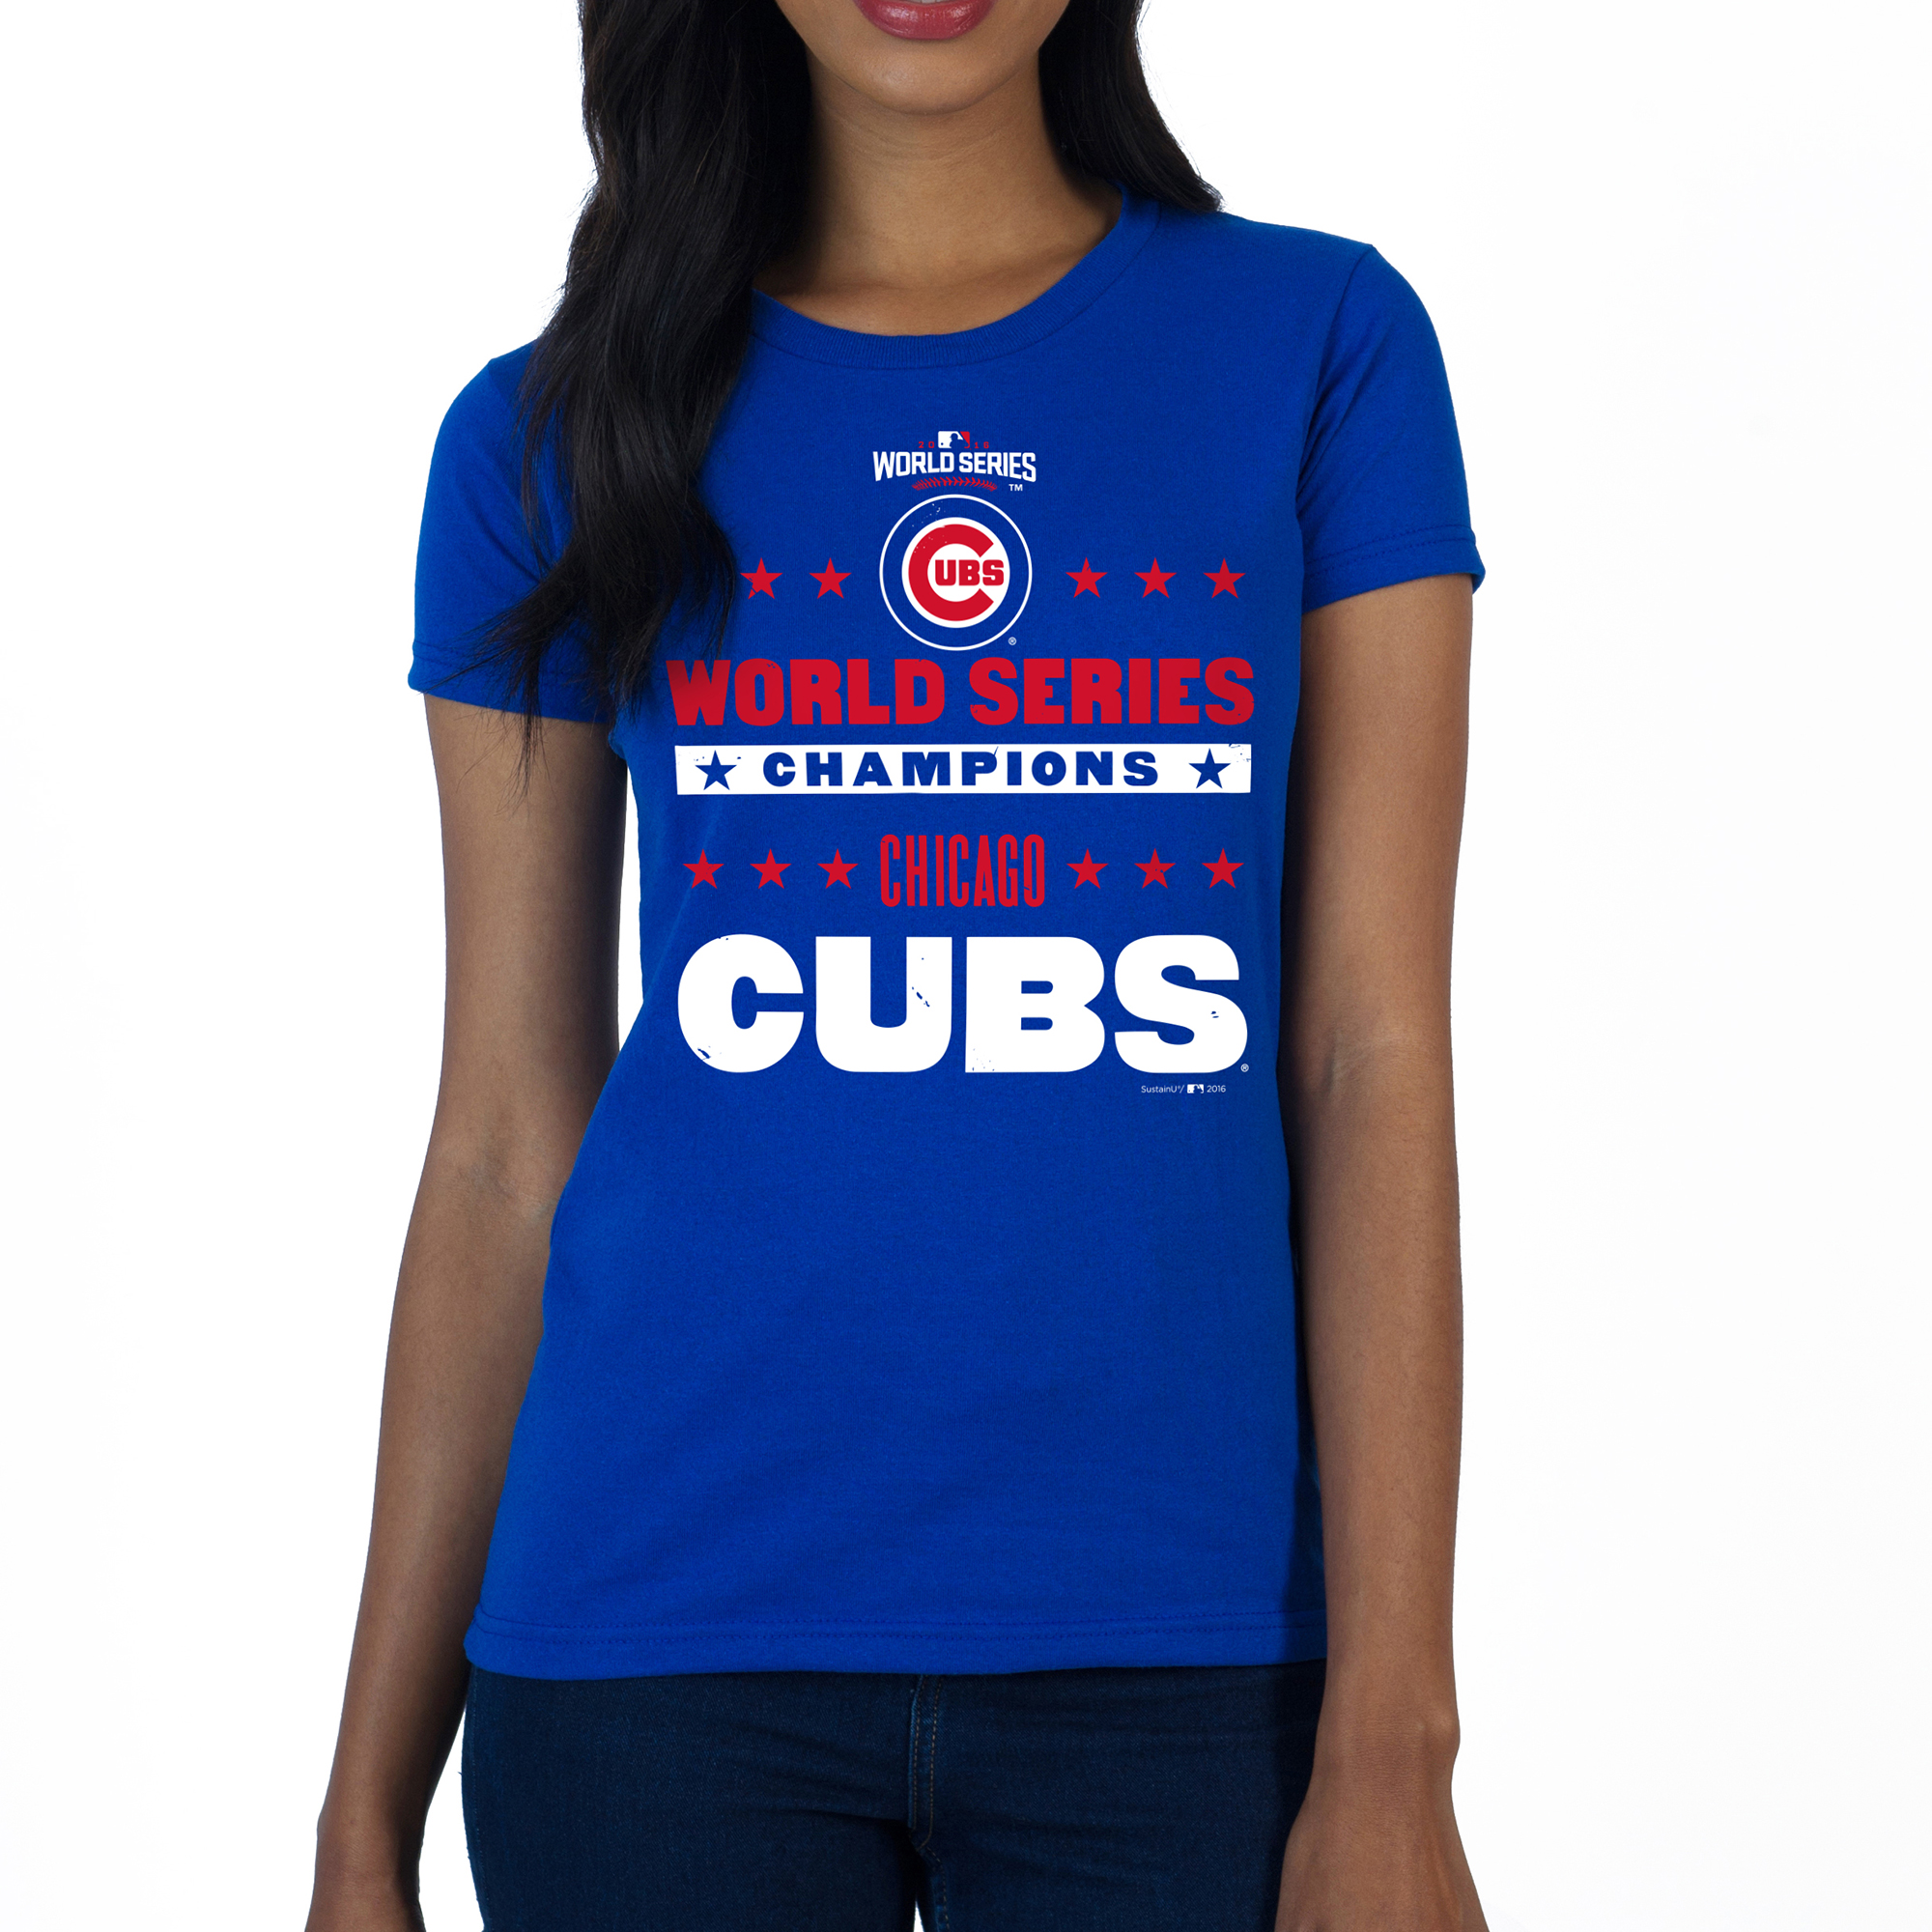 Chicago Cubs SustainU Women's 2016 World Series Champions Americana Crew Neck T-Shirt - Royal